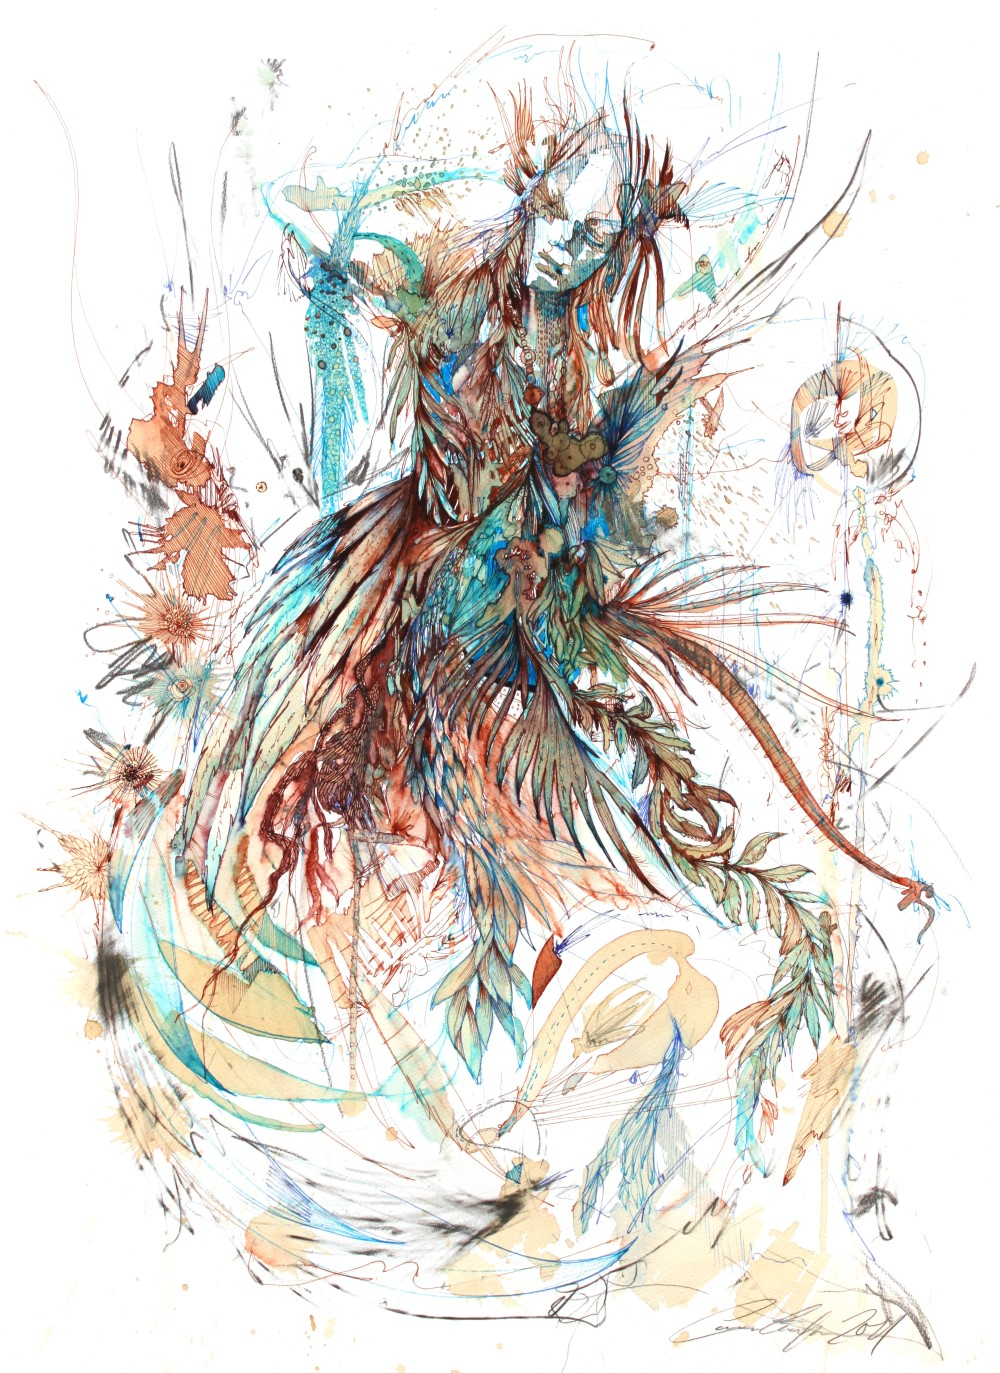 Lose Yourself by Carne Griffiths